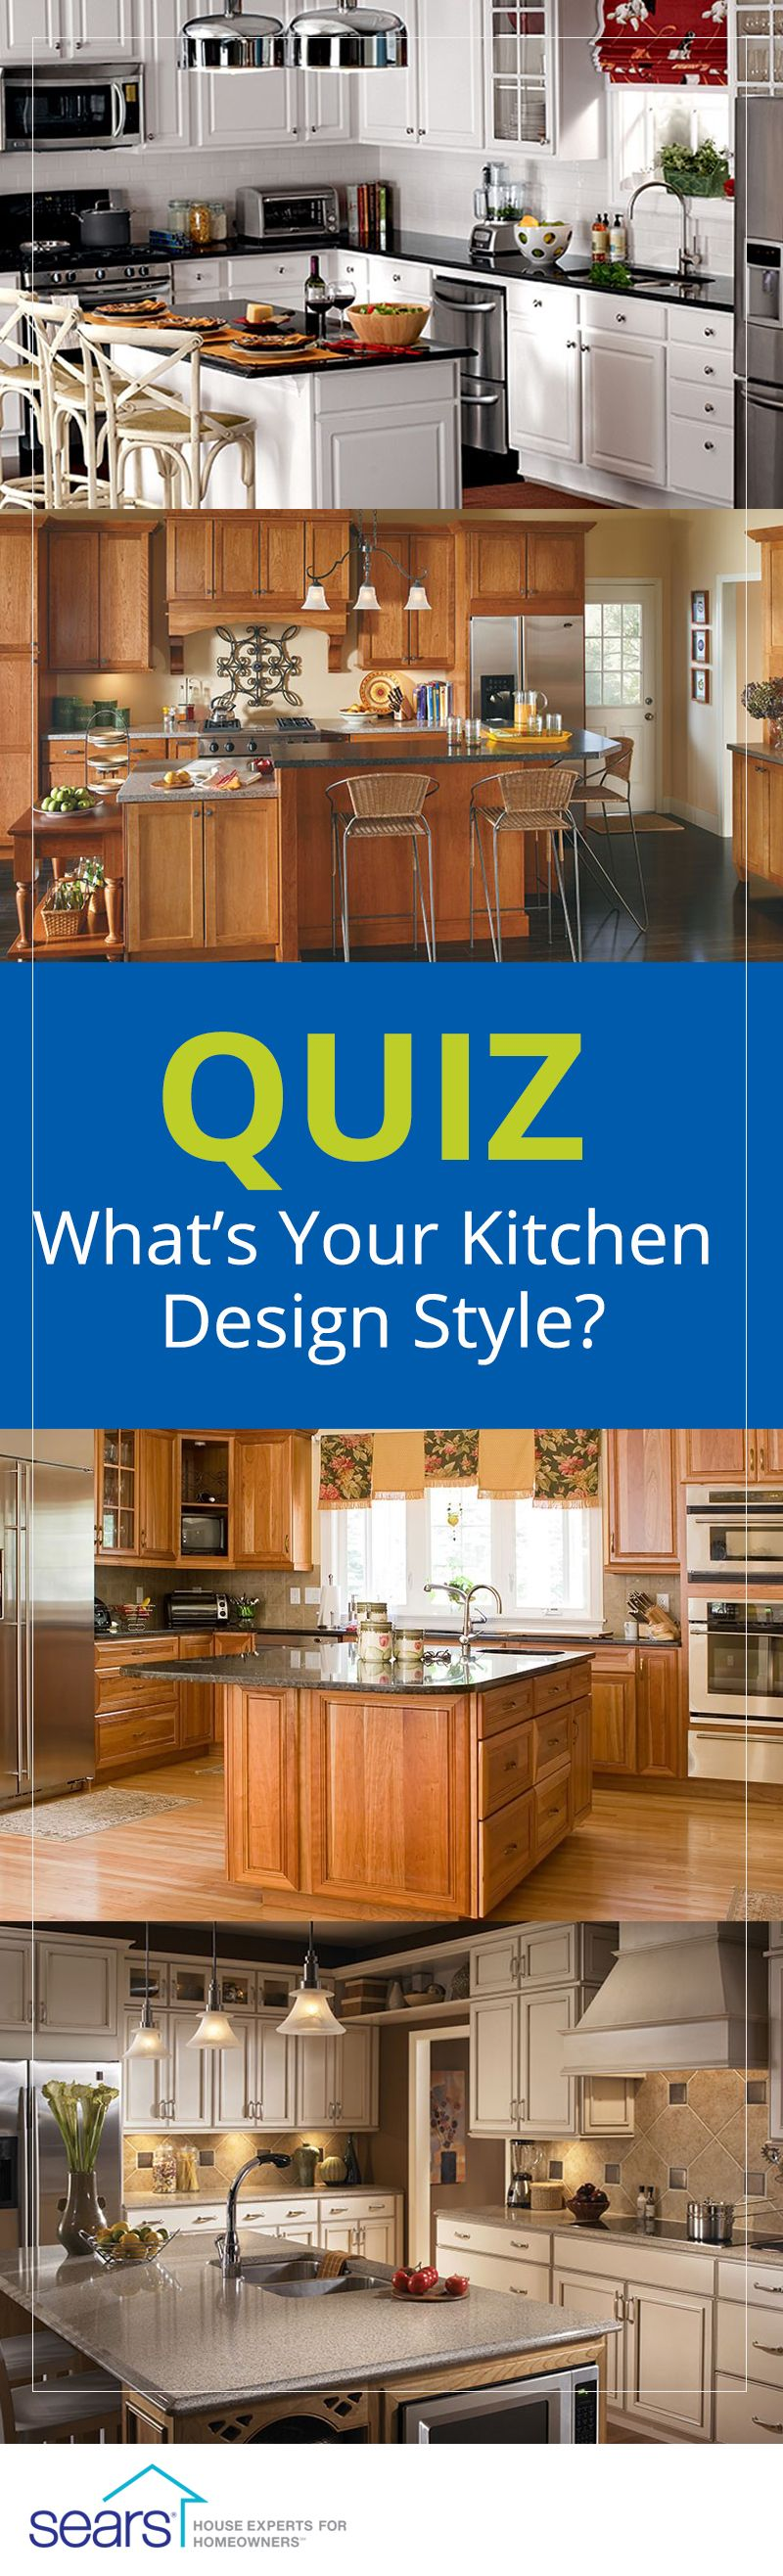 quiz: what's your kitchen design style? are you traditional